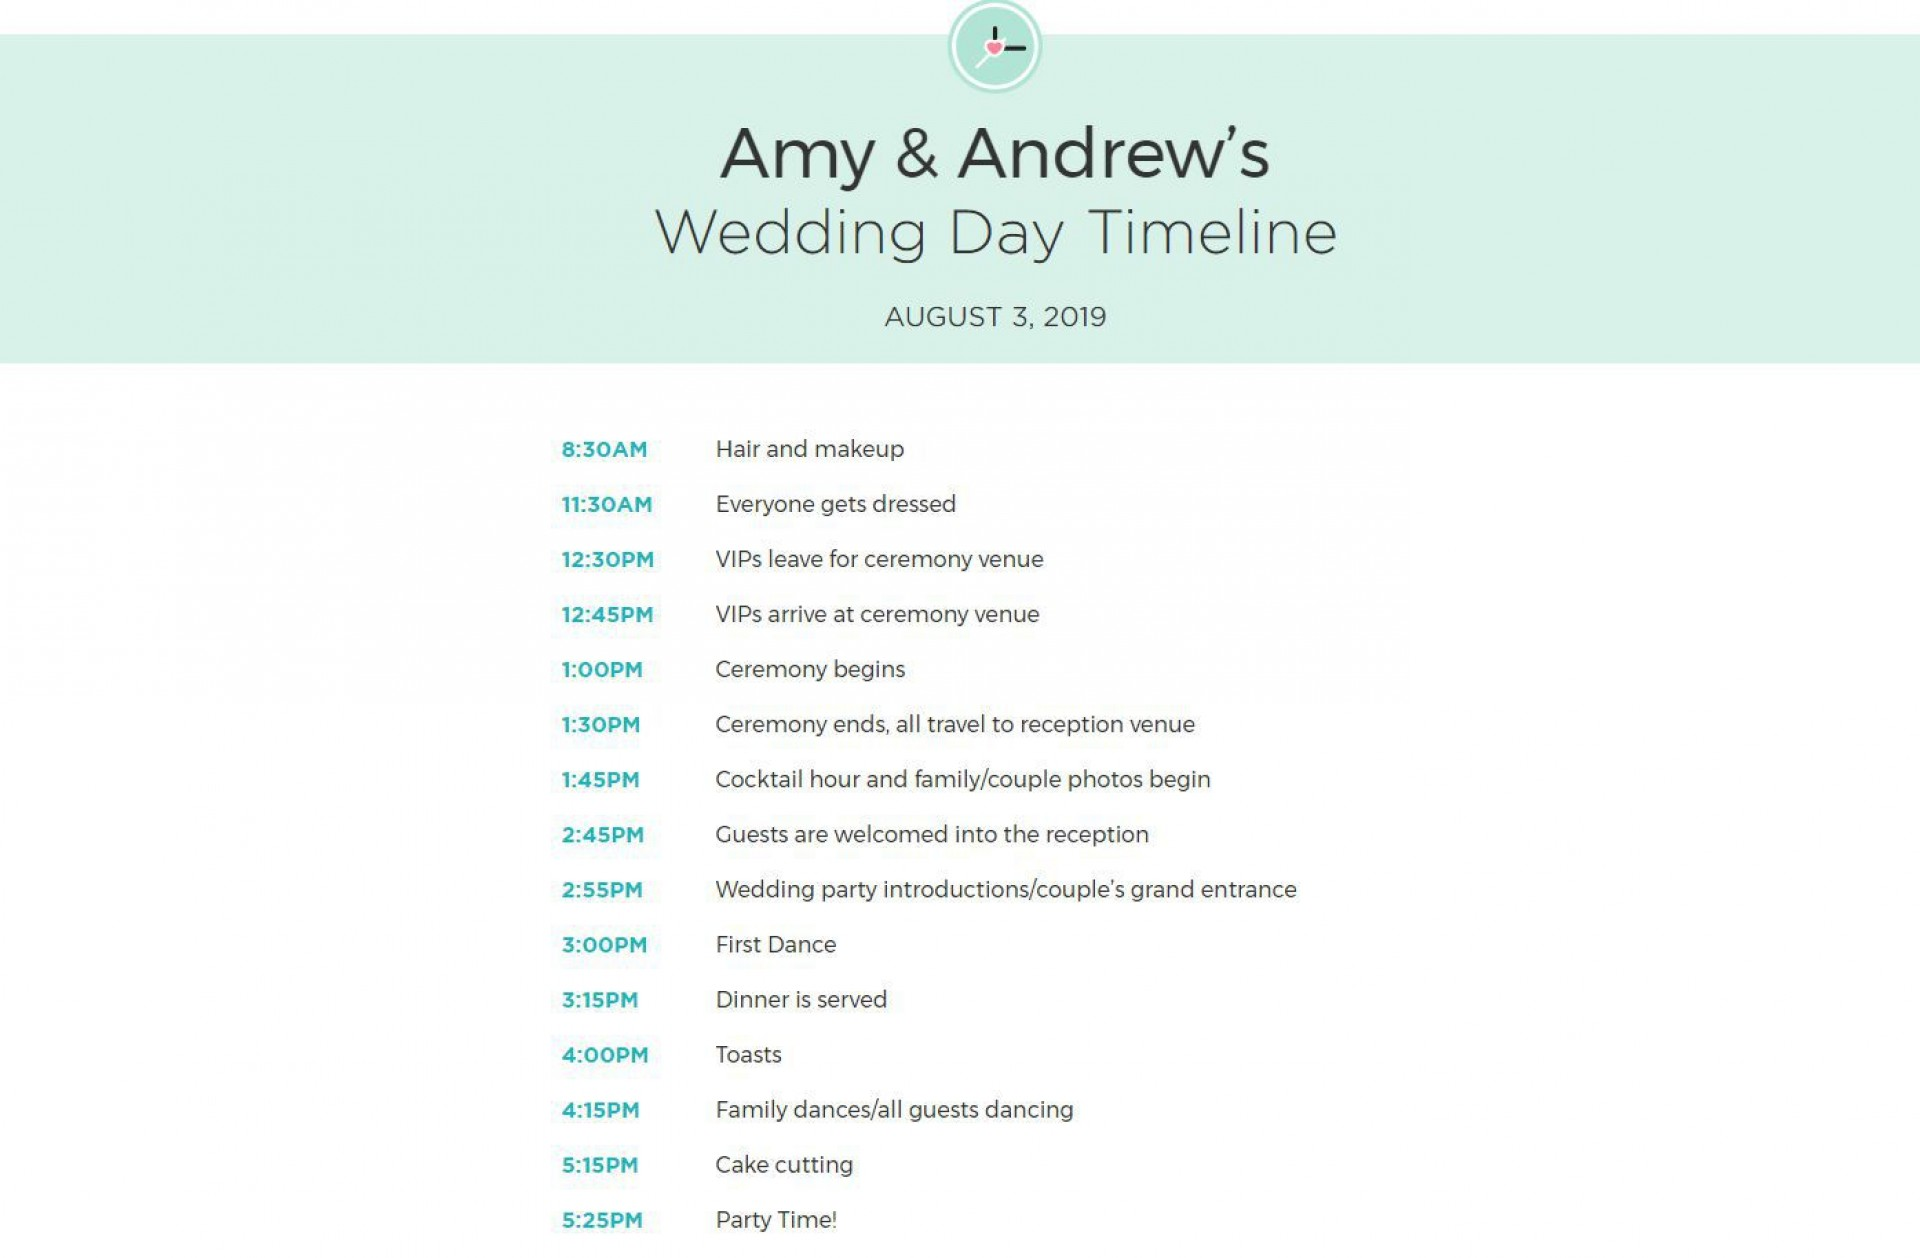 009 Exceptional Wedding Day Schedule Template Example  Excel Editable Timeline Free Word1920